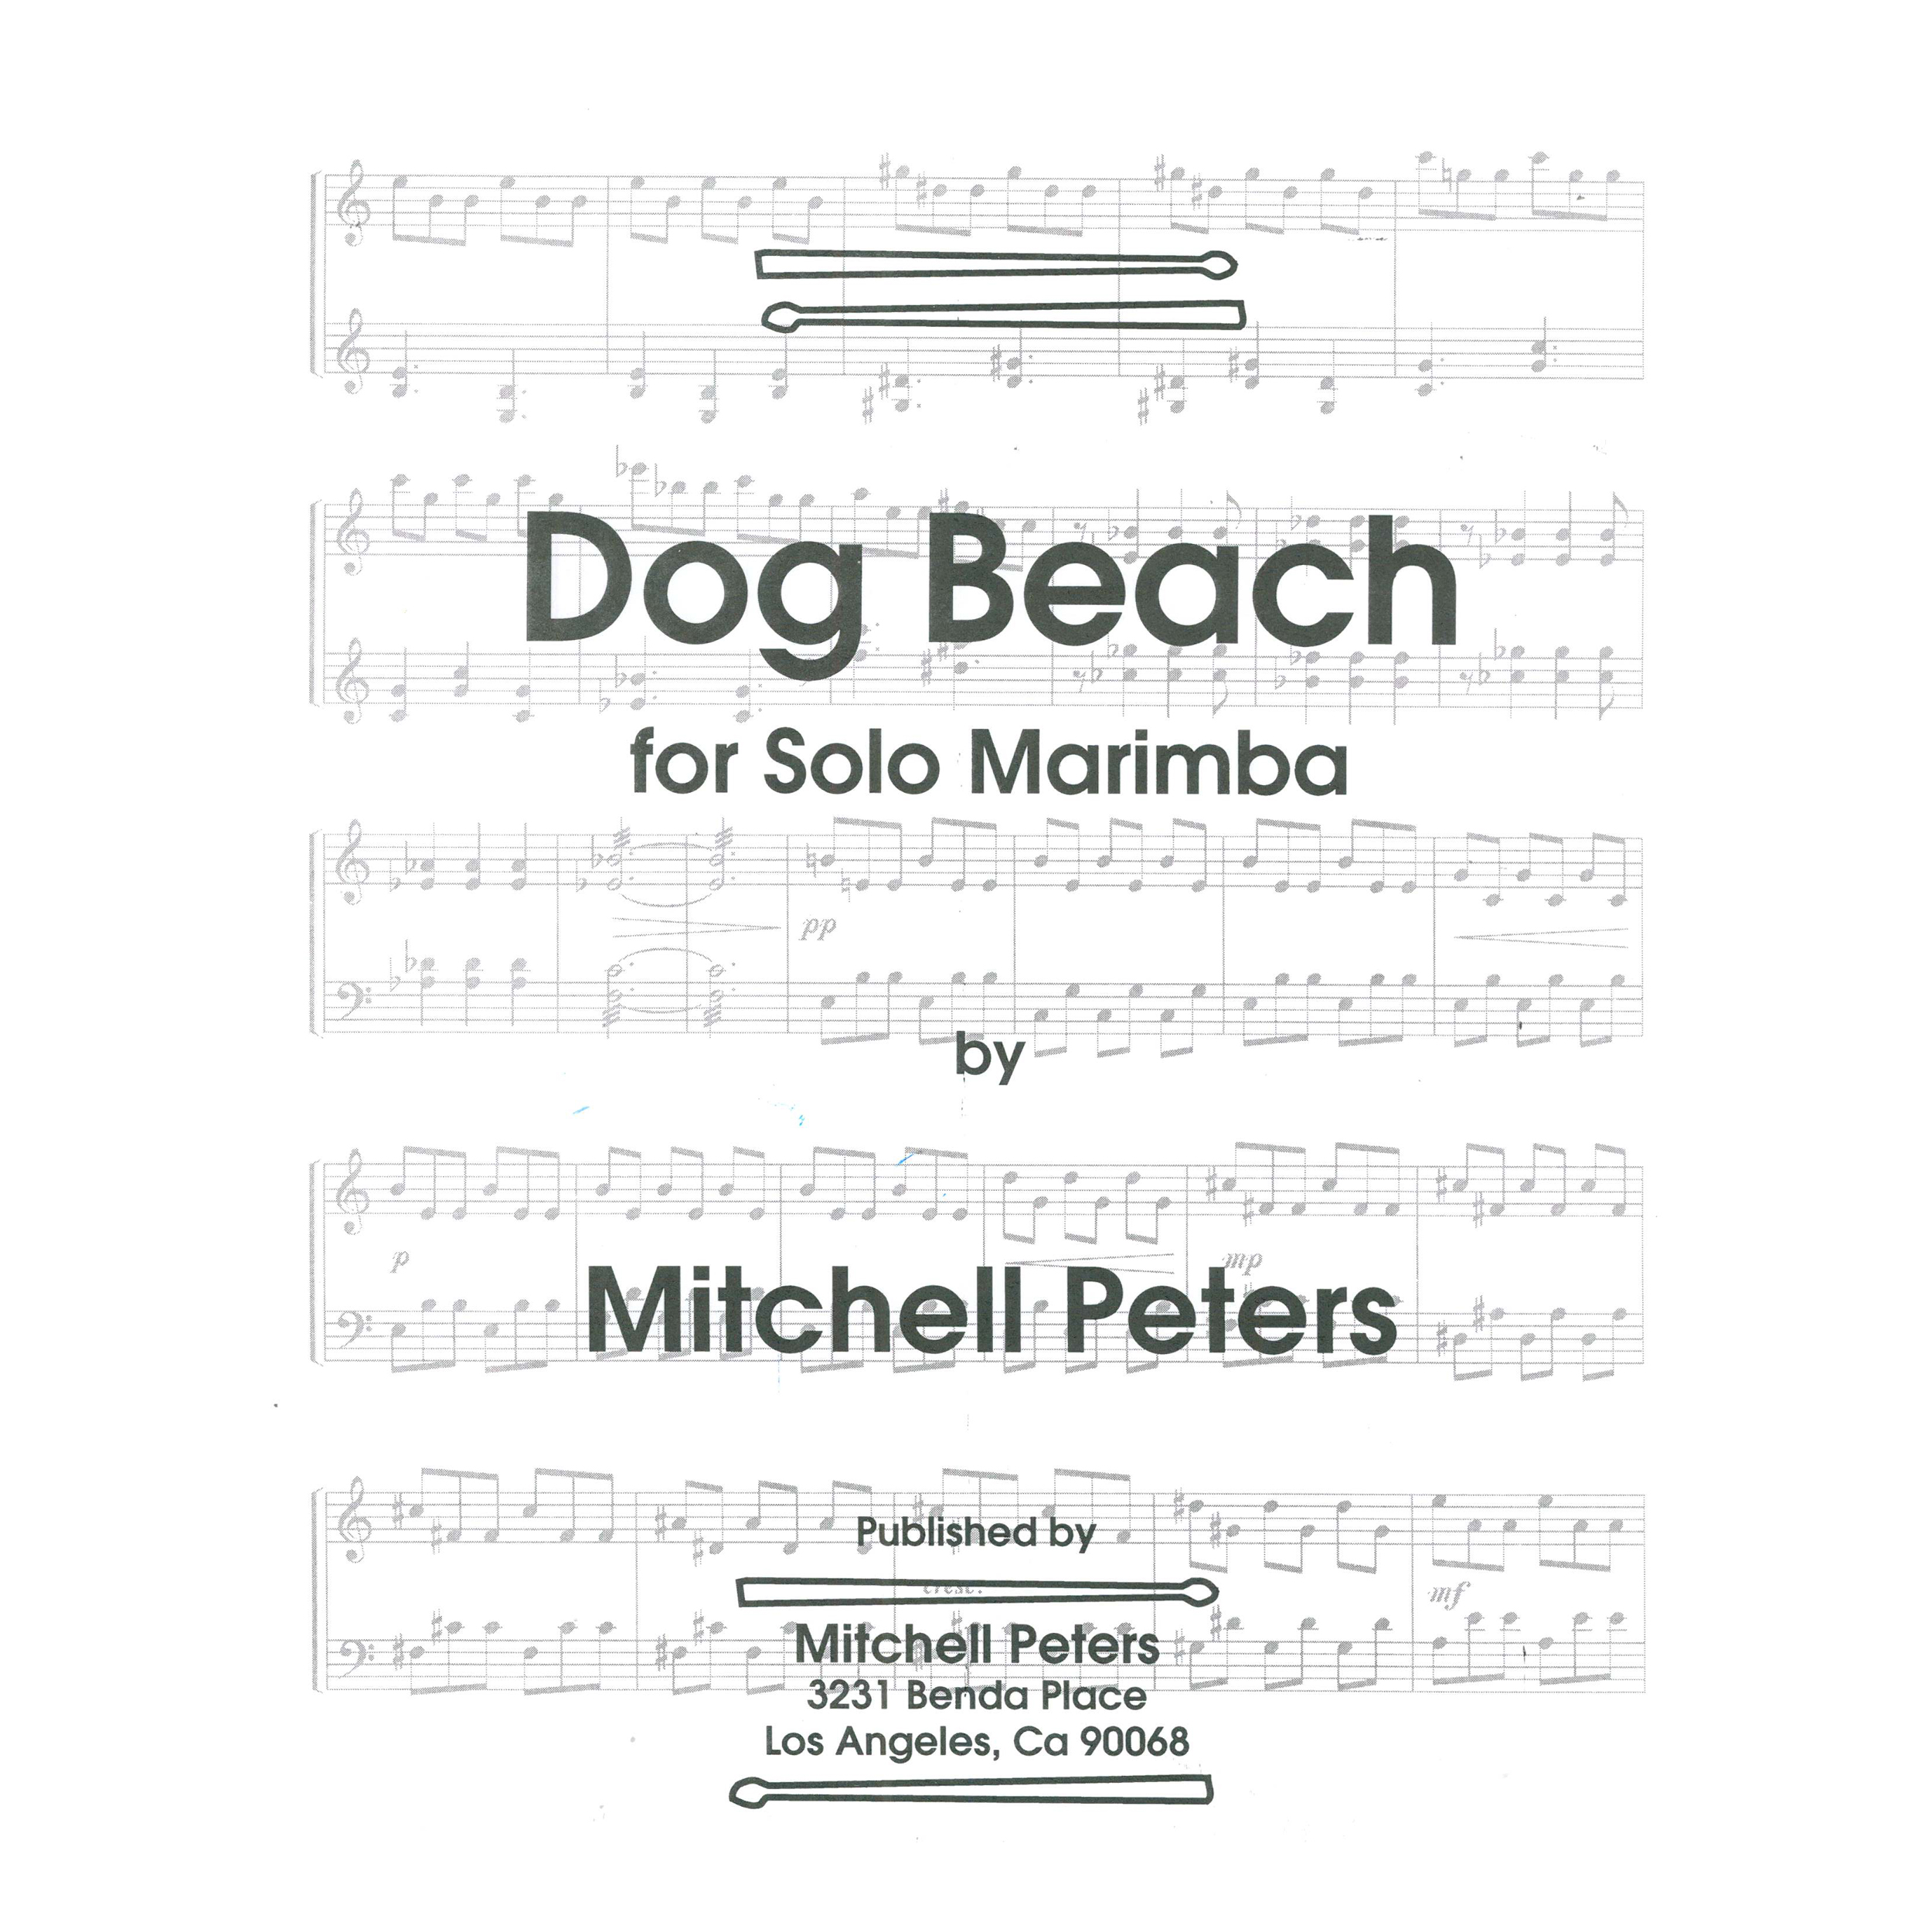 Dog Beach by Mitchell Peters